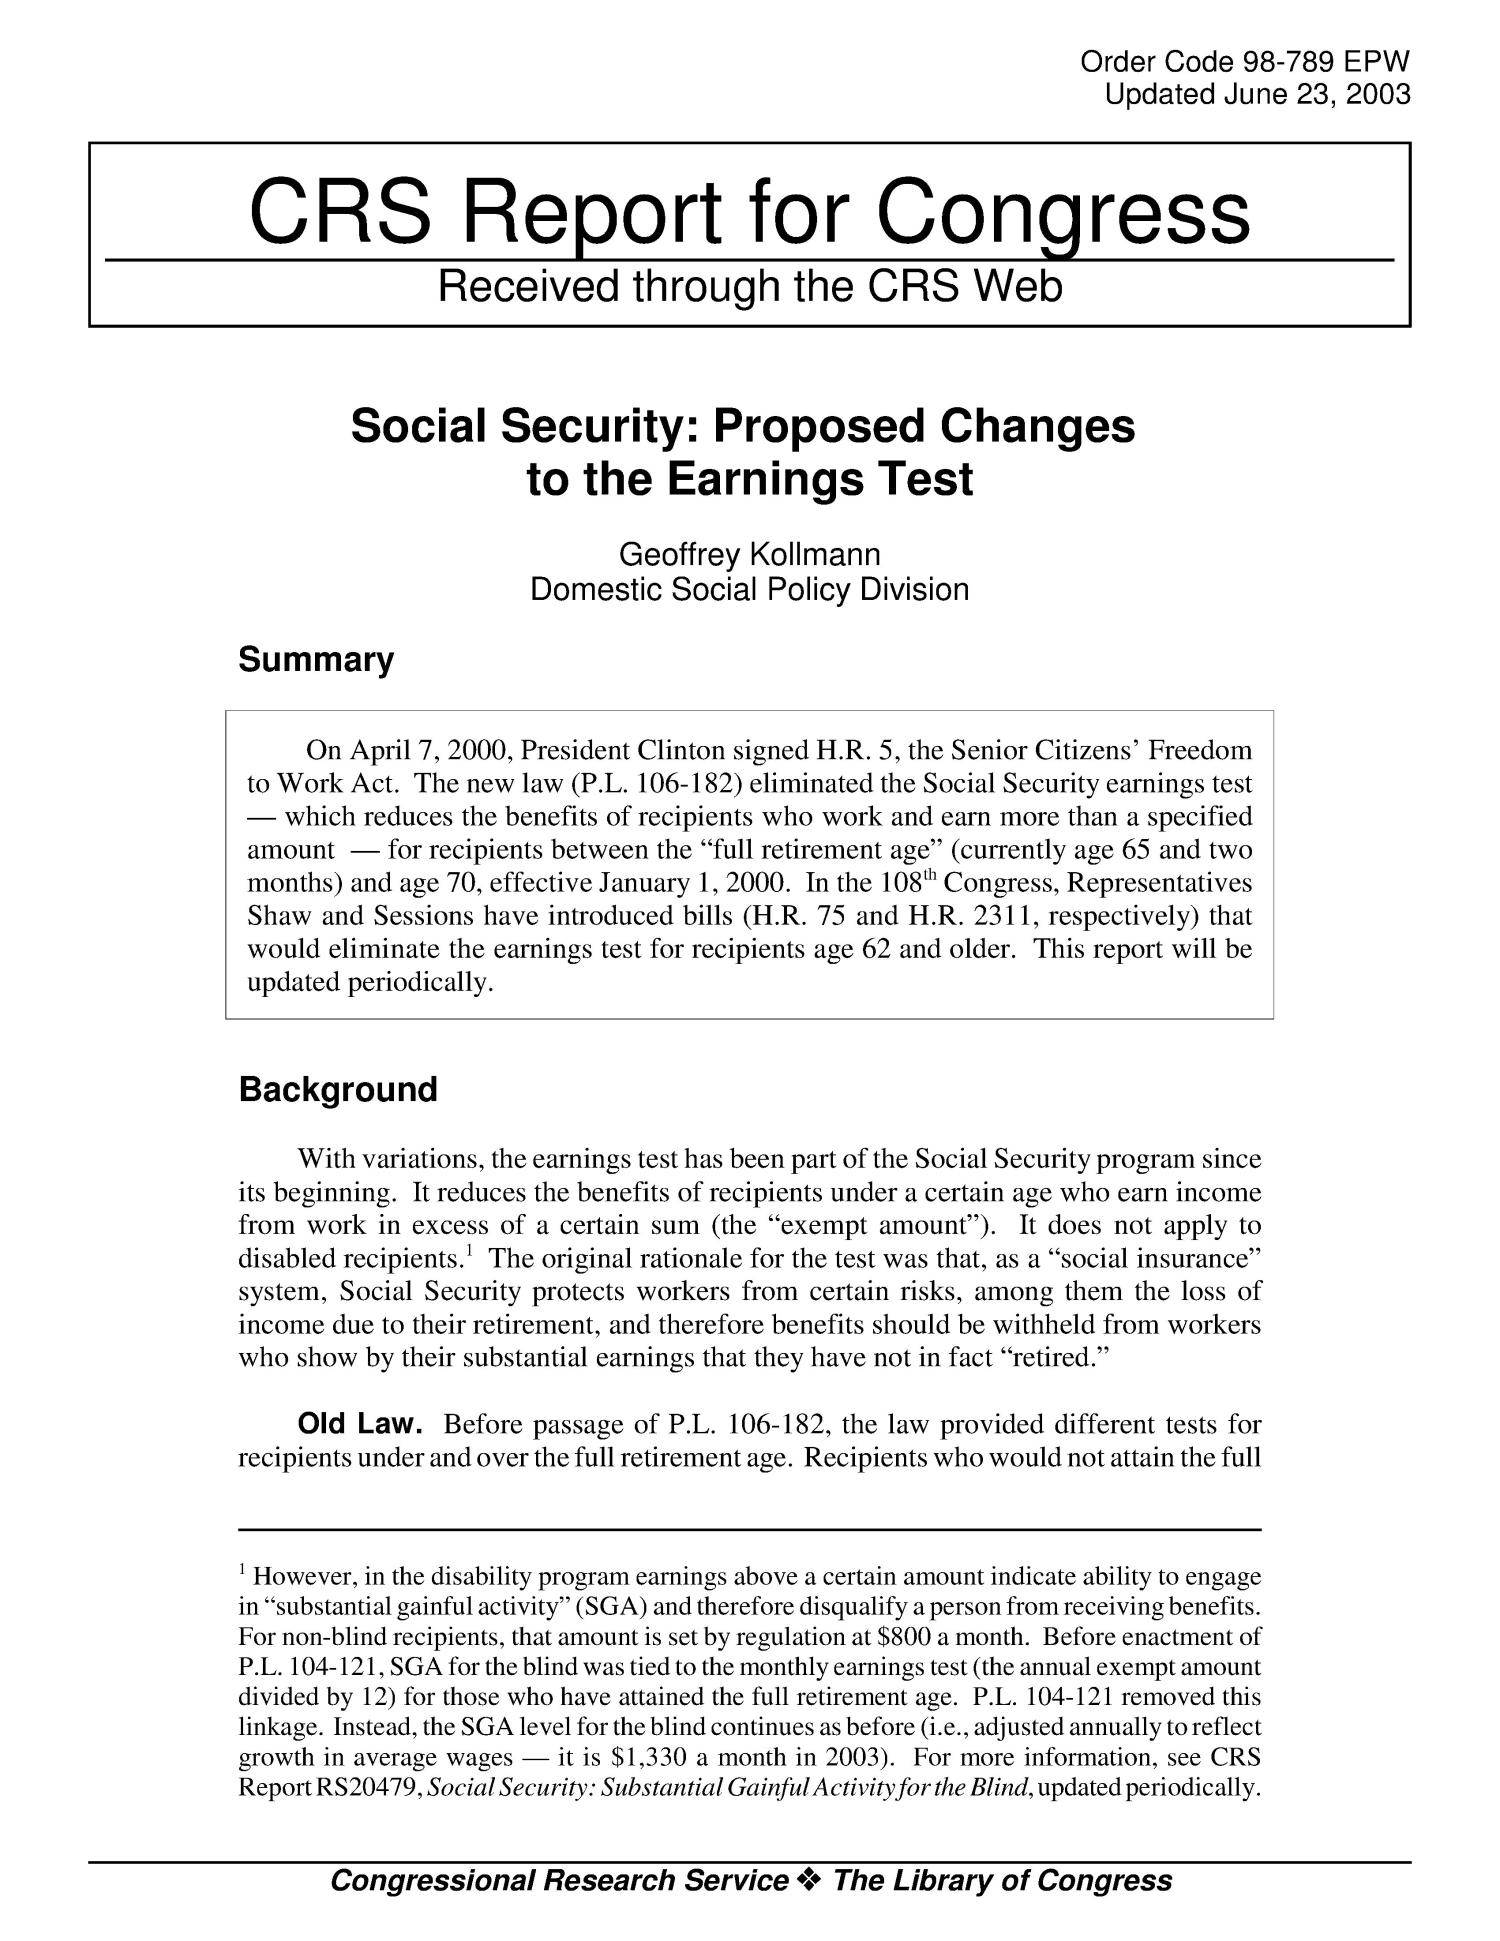 Social Security: Proposed Changes to the Earnings Test                                                                                                      [Sequence #]: 1 of 6